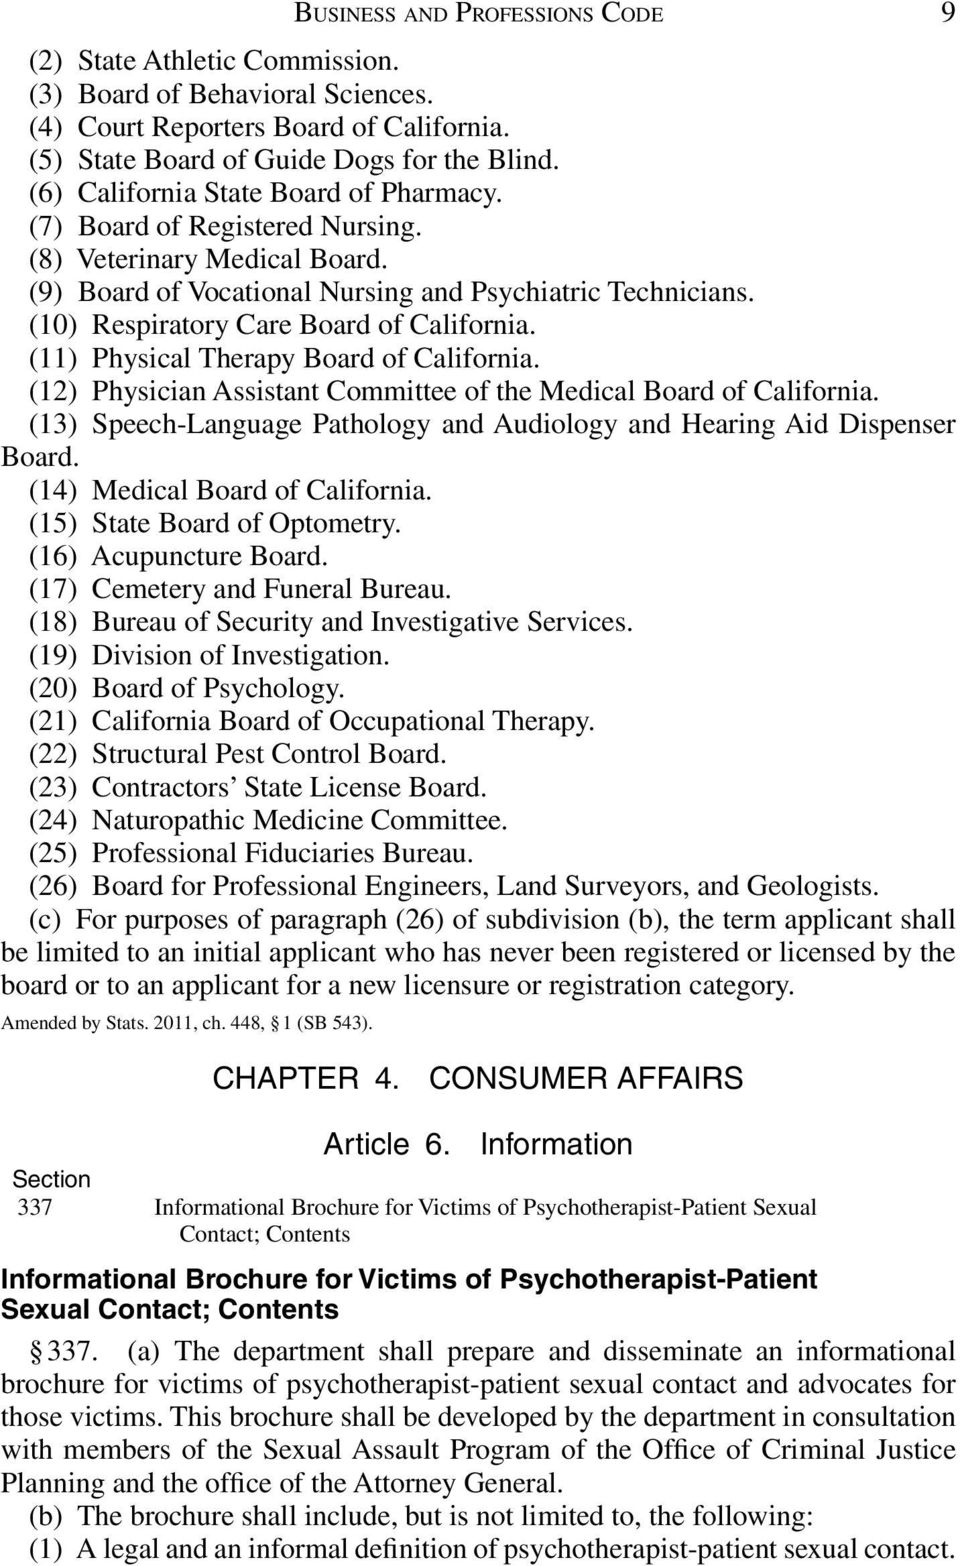 (10) Respiratory Care Board of California. (11) Physical Therapy Board of California. (12) Physician Assistant Committee of the Medical Board of California.